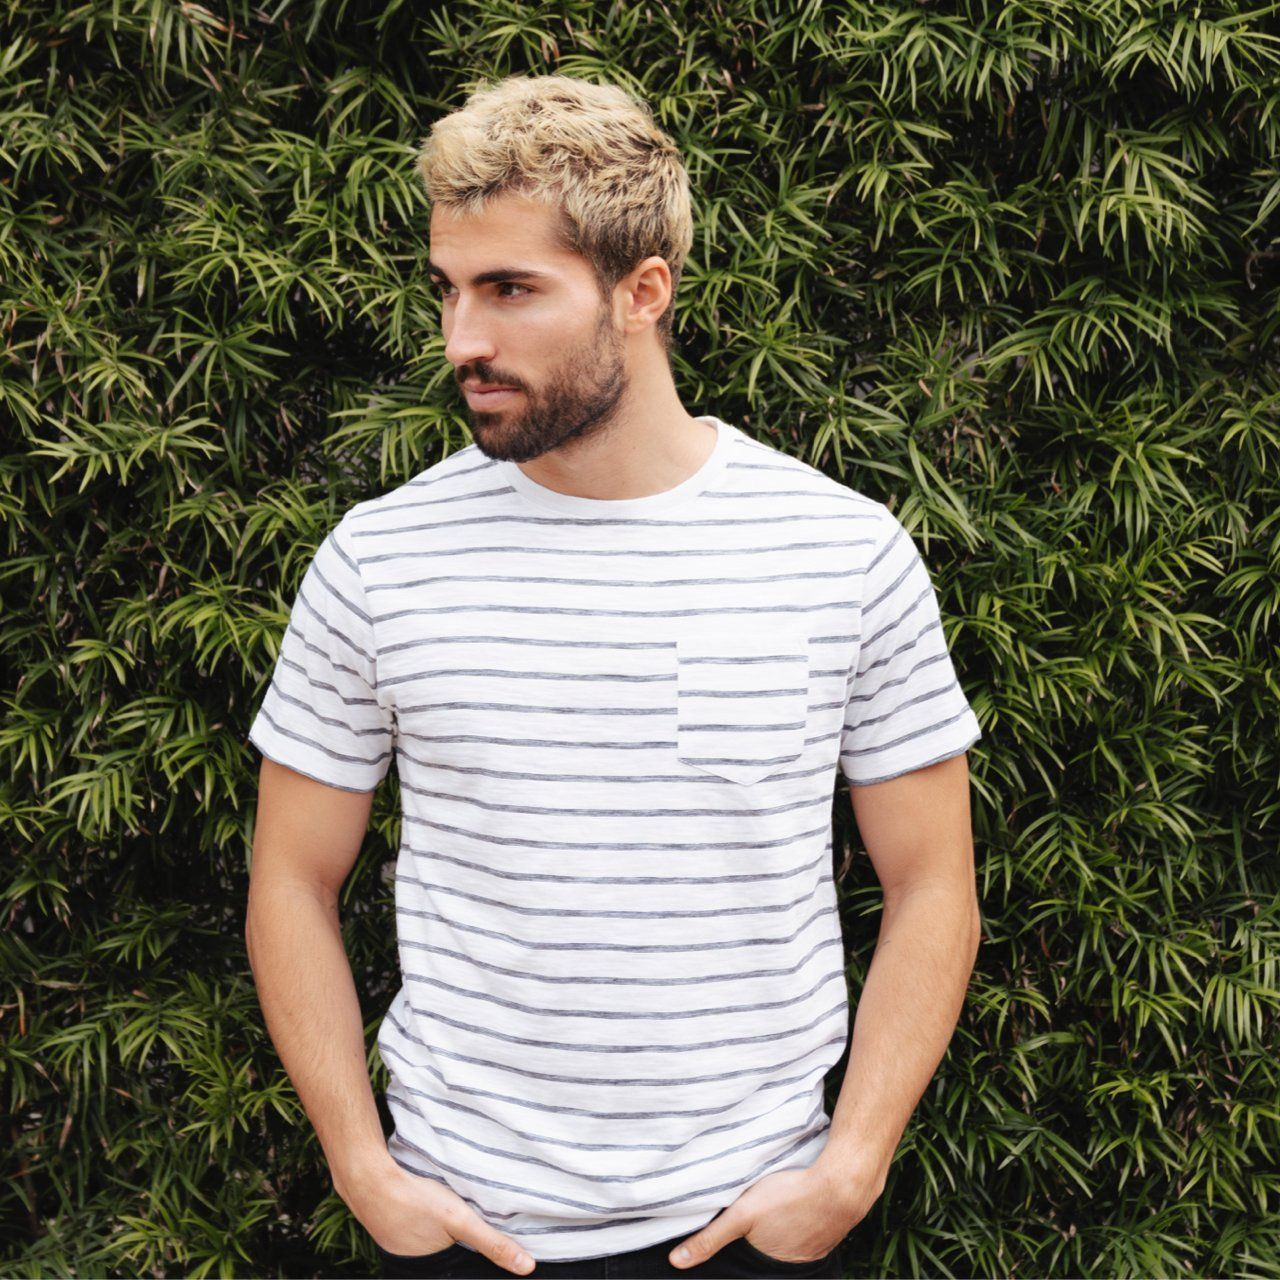 Rick Striped Tee